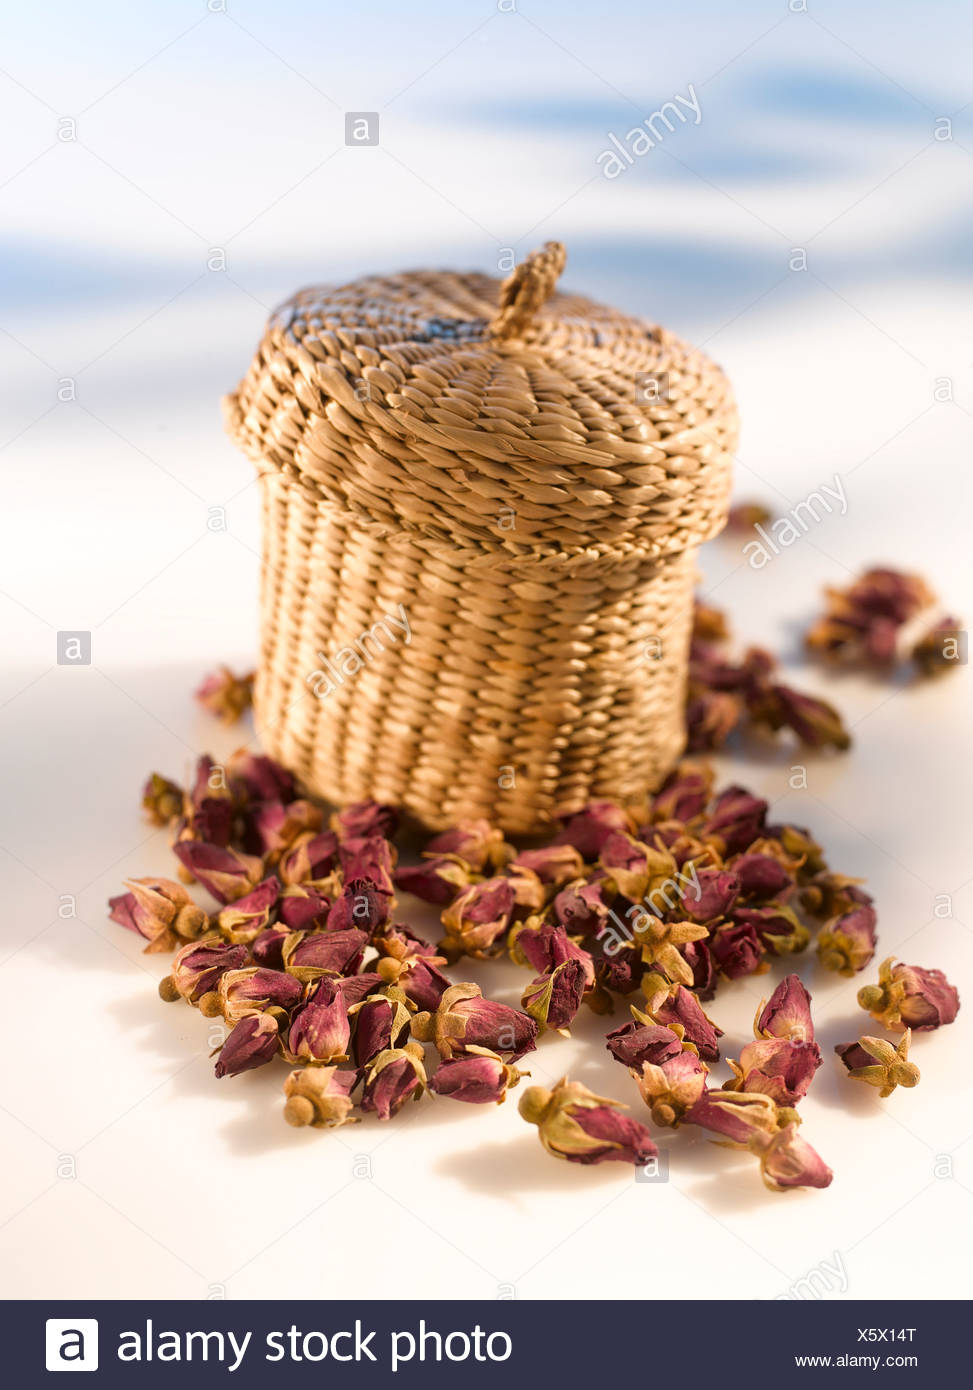 Bast basket and dried rose petals - Stock Image